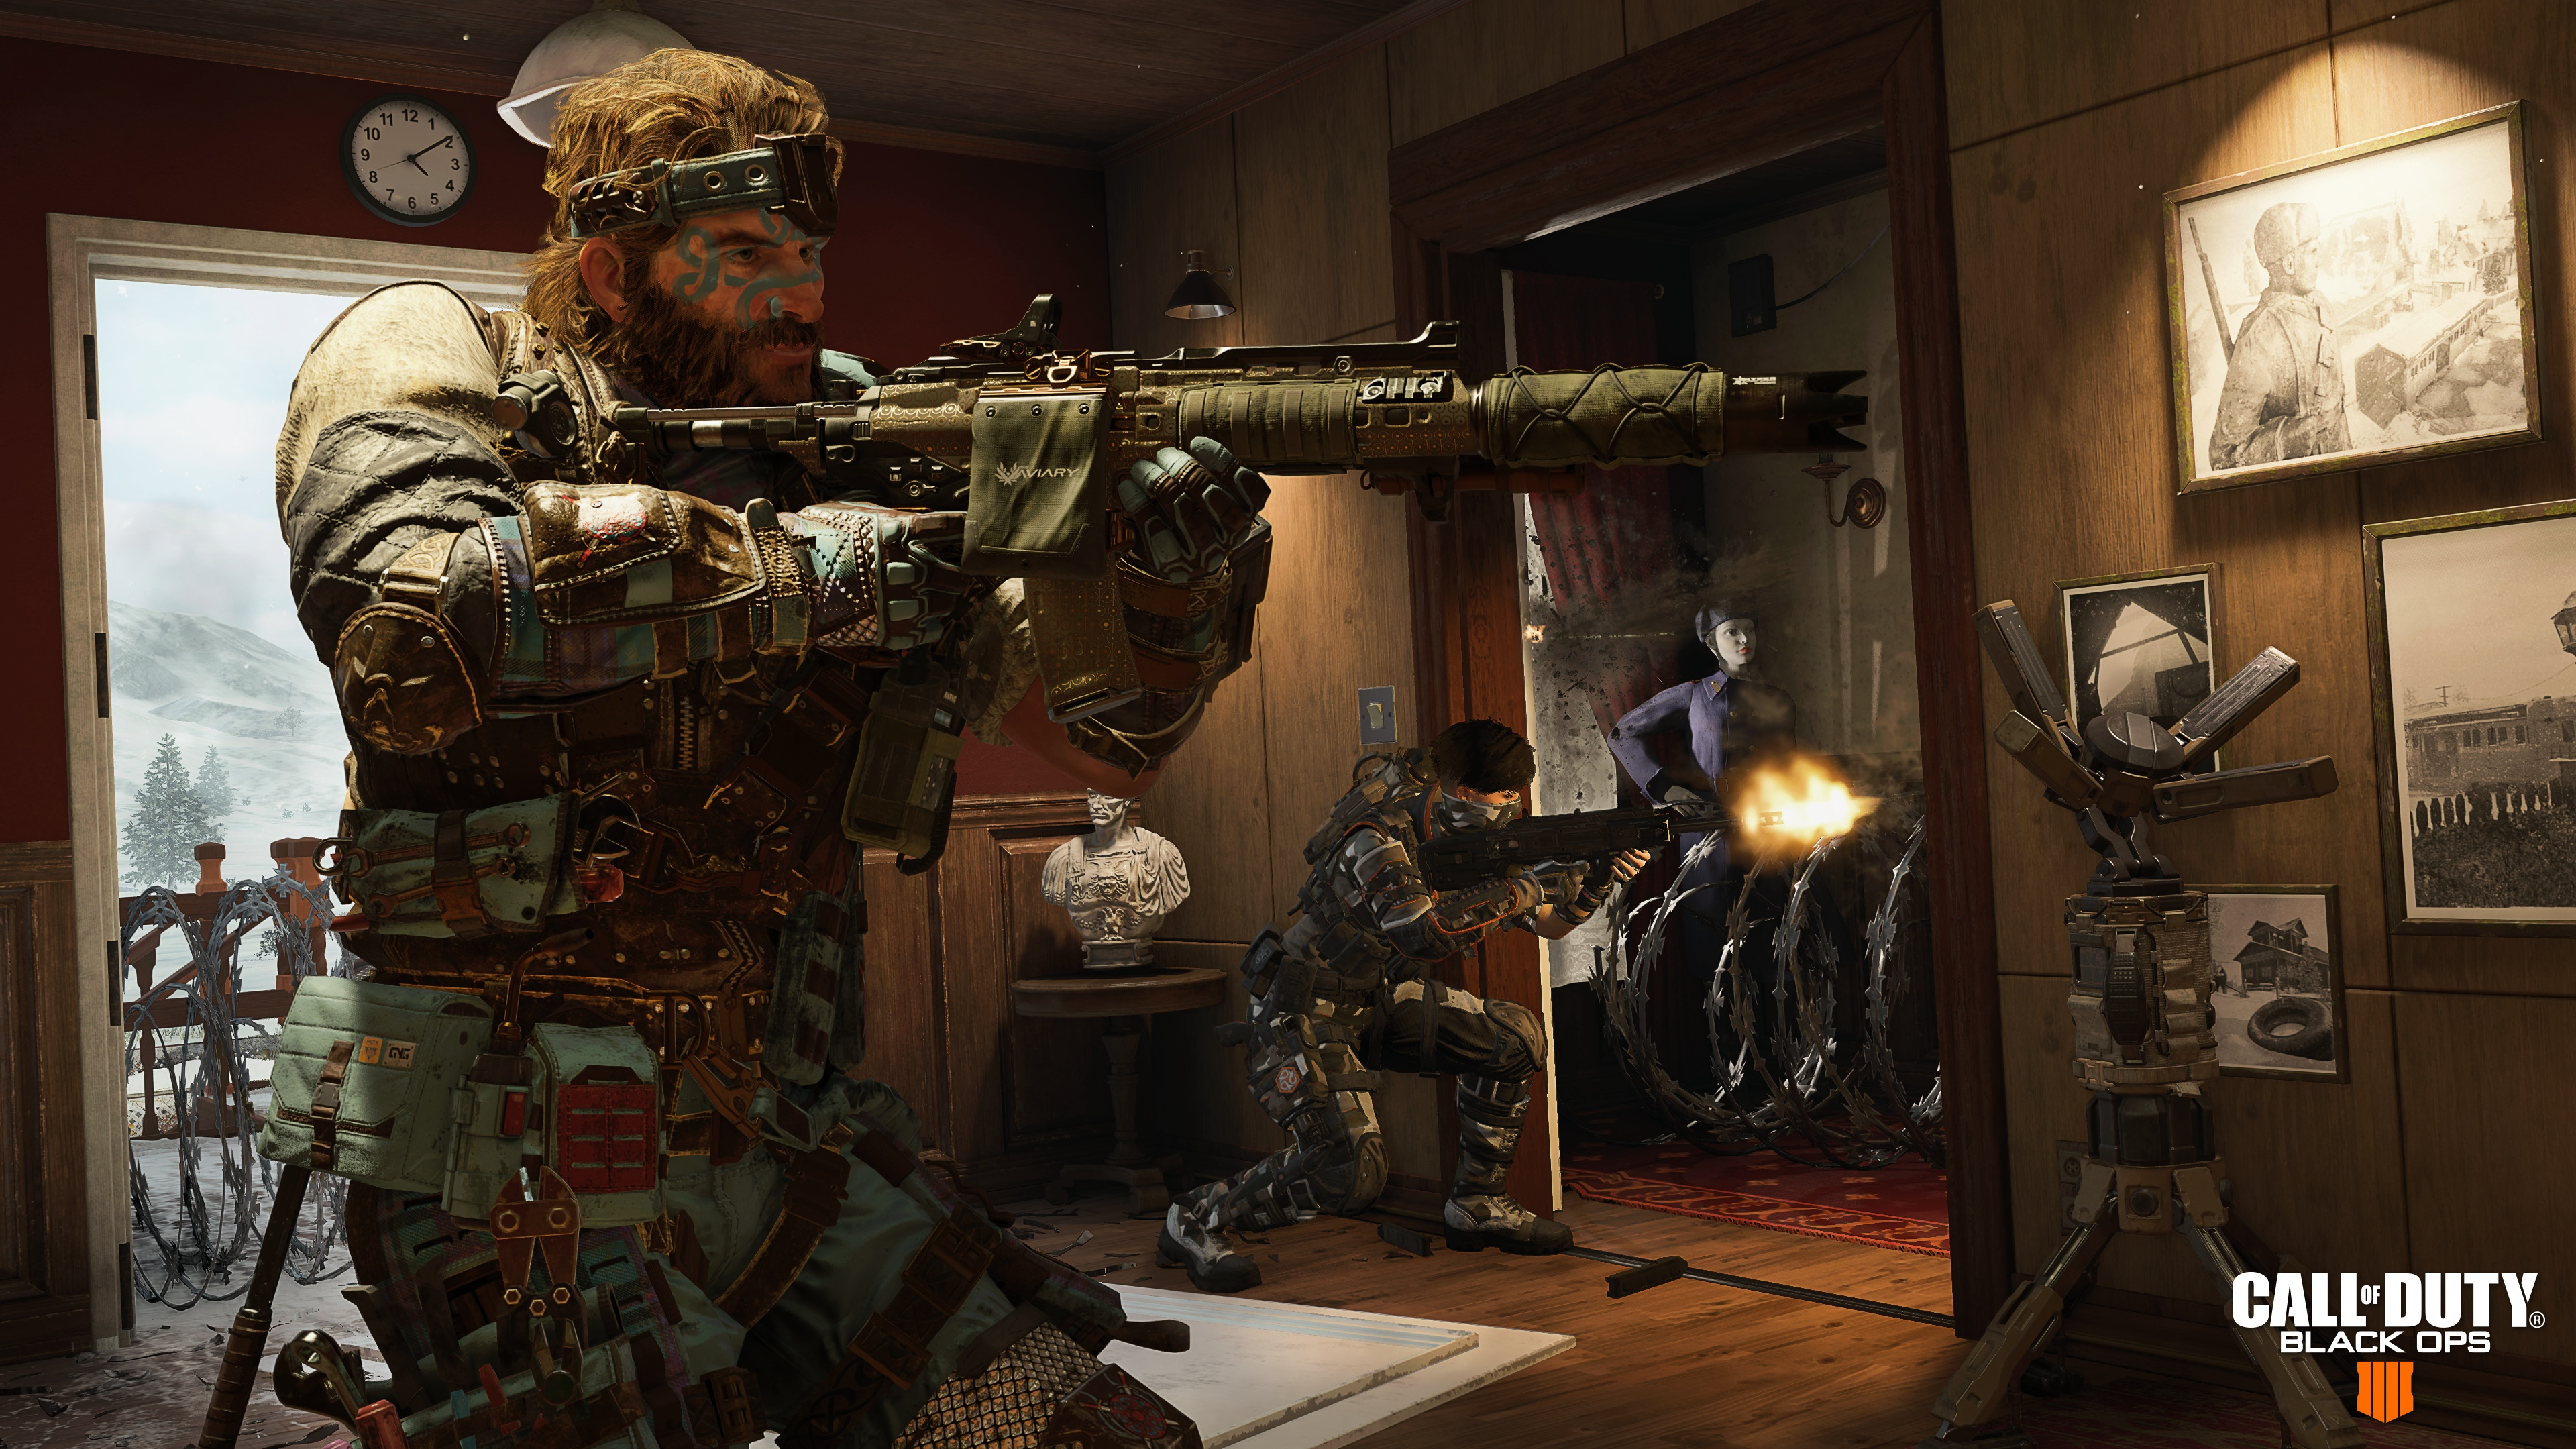 Wallpaper 4k Nuketown Call Of Duty Black Ops 4 2018 Games Wallpapers